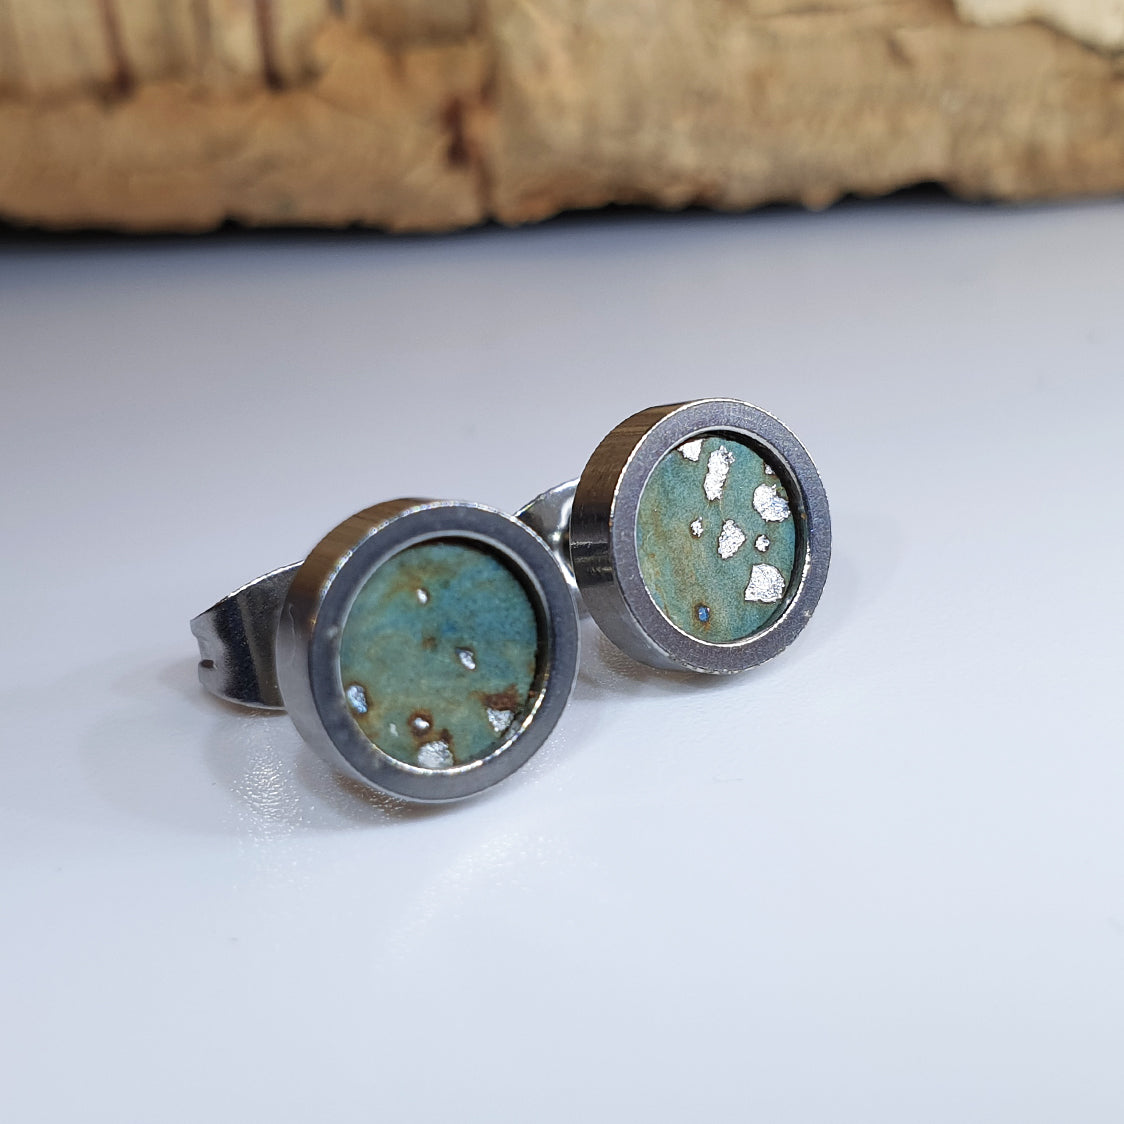 Fabrikk Cork Stud Earrings | Dwarf Size | Aqua Silver | Vegan Leather